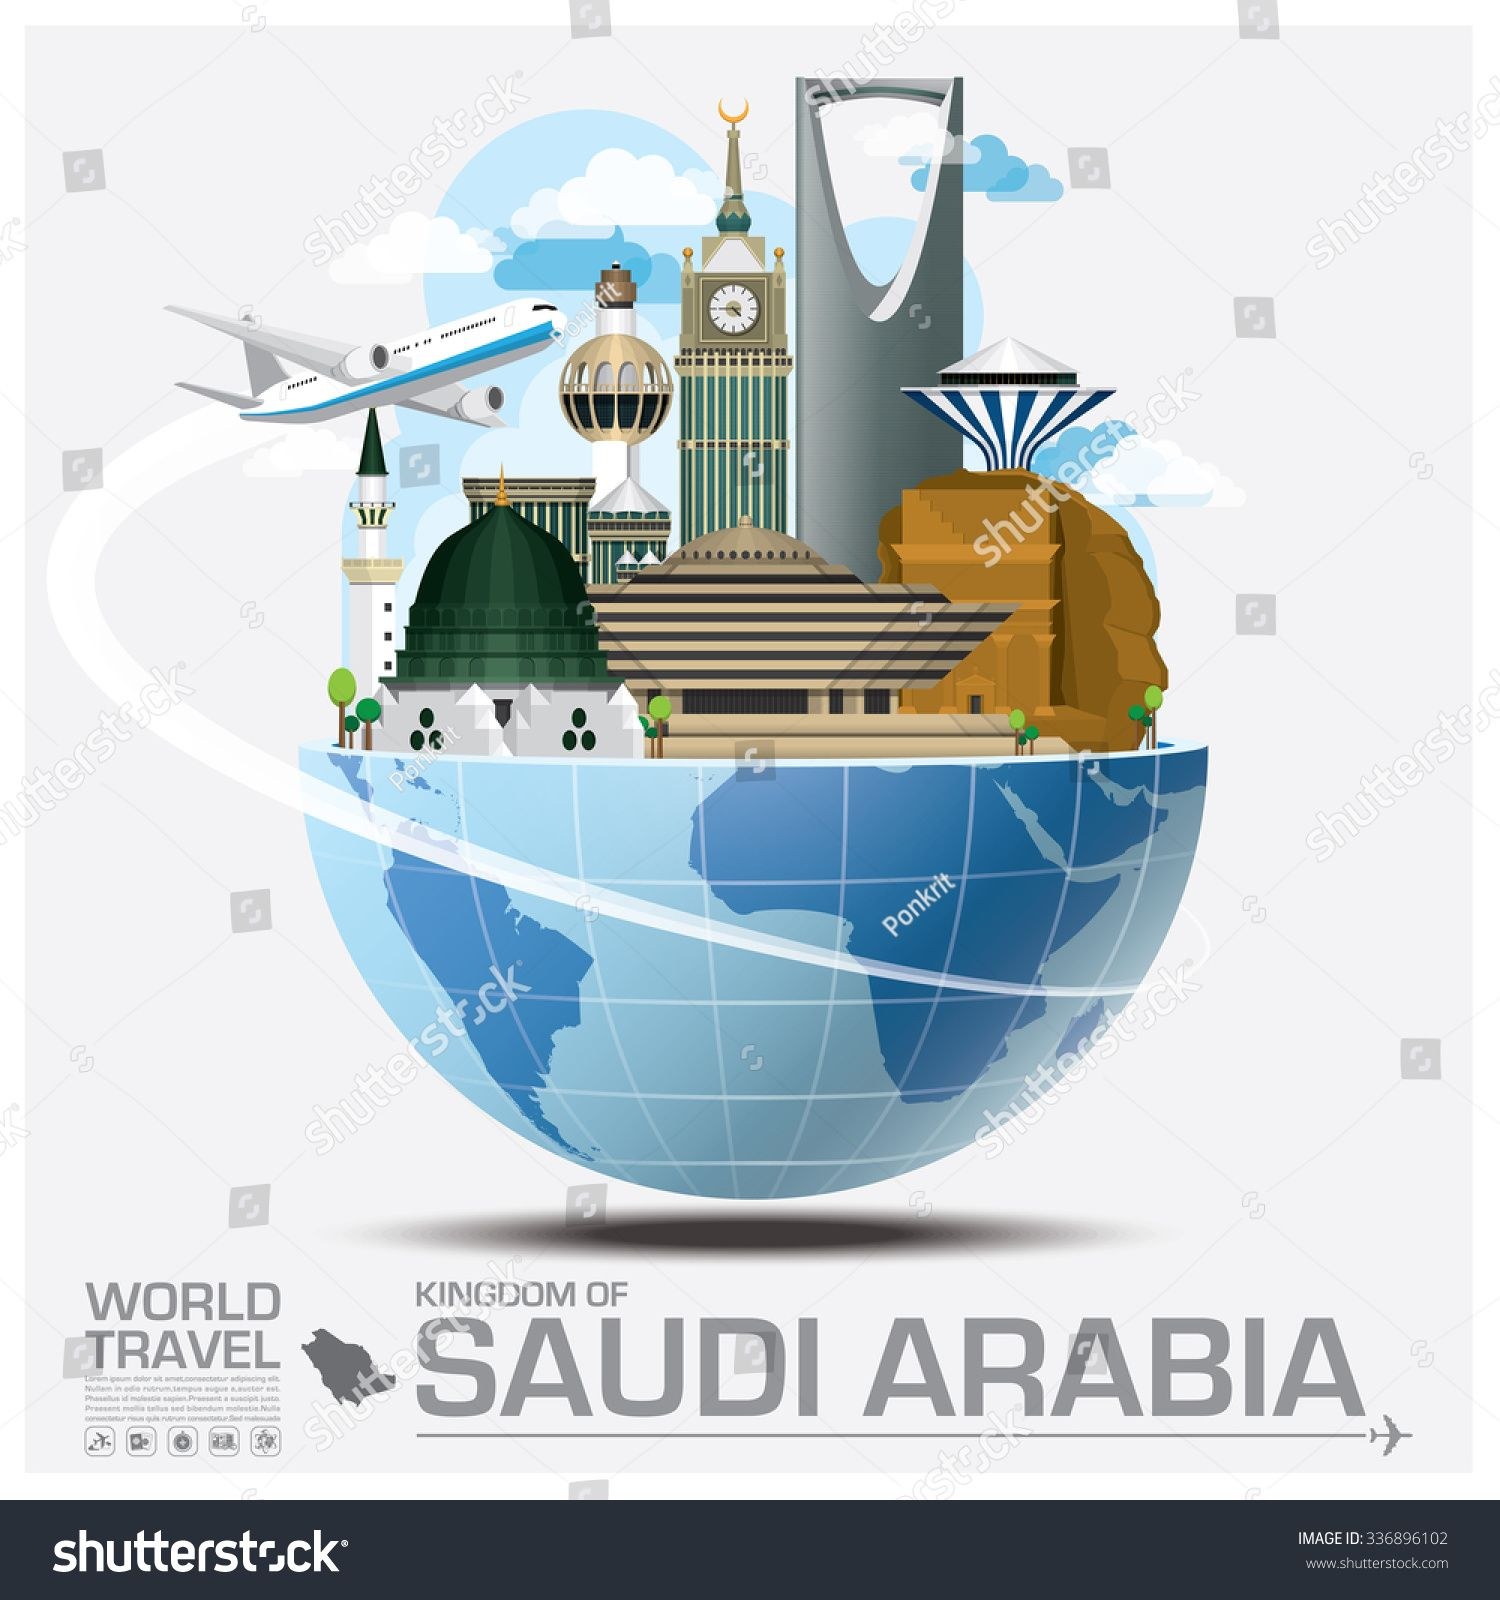 Kingdom Of Saudi Arabia Landmark Global Travel And Journey Infographic Vector Design Template Sponsored In 2020 Vector Graphics Design Global Travel Design Template